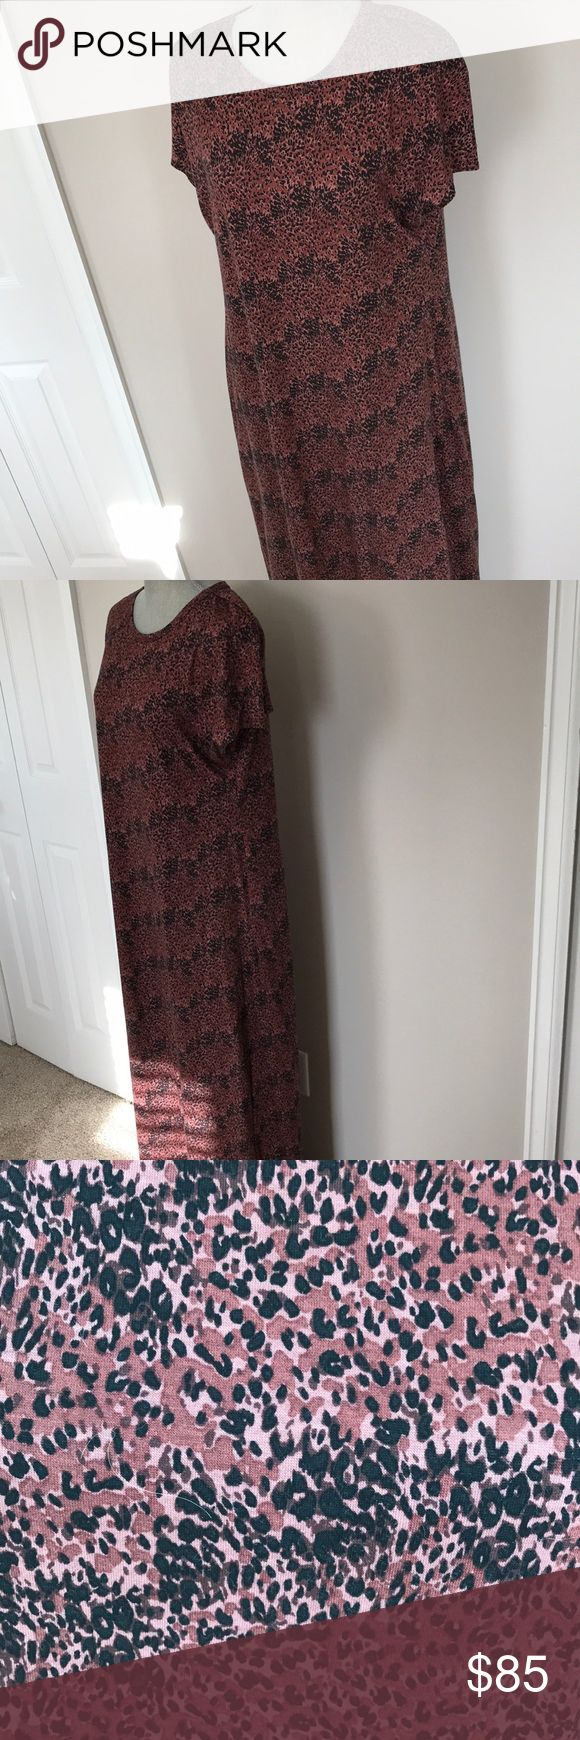 Animal print maxi⏰Flash Sale🚨 Mauve pink mixed toned animal print maxi dress. Lularoe Maria style new without tags. Too big. See pictures for size and color reference. Price is firm LuLaRoe Dresses Maxi